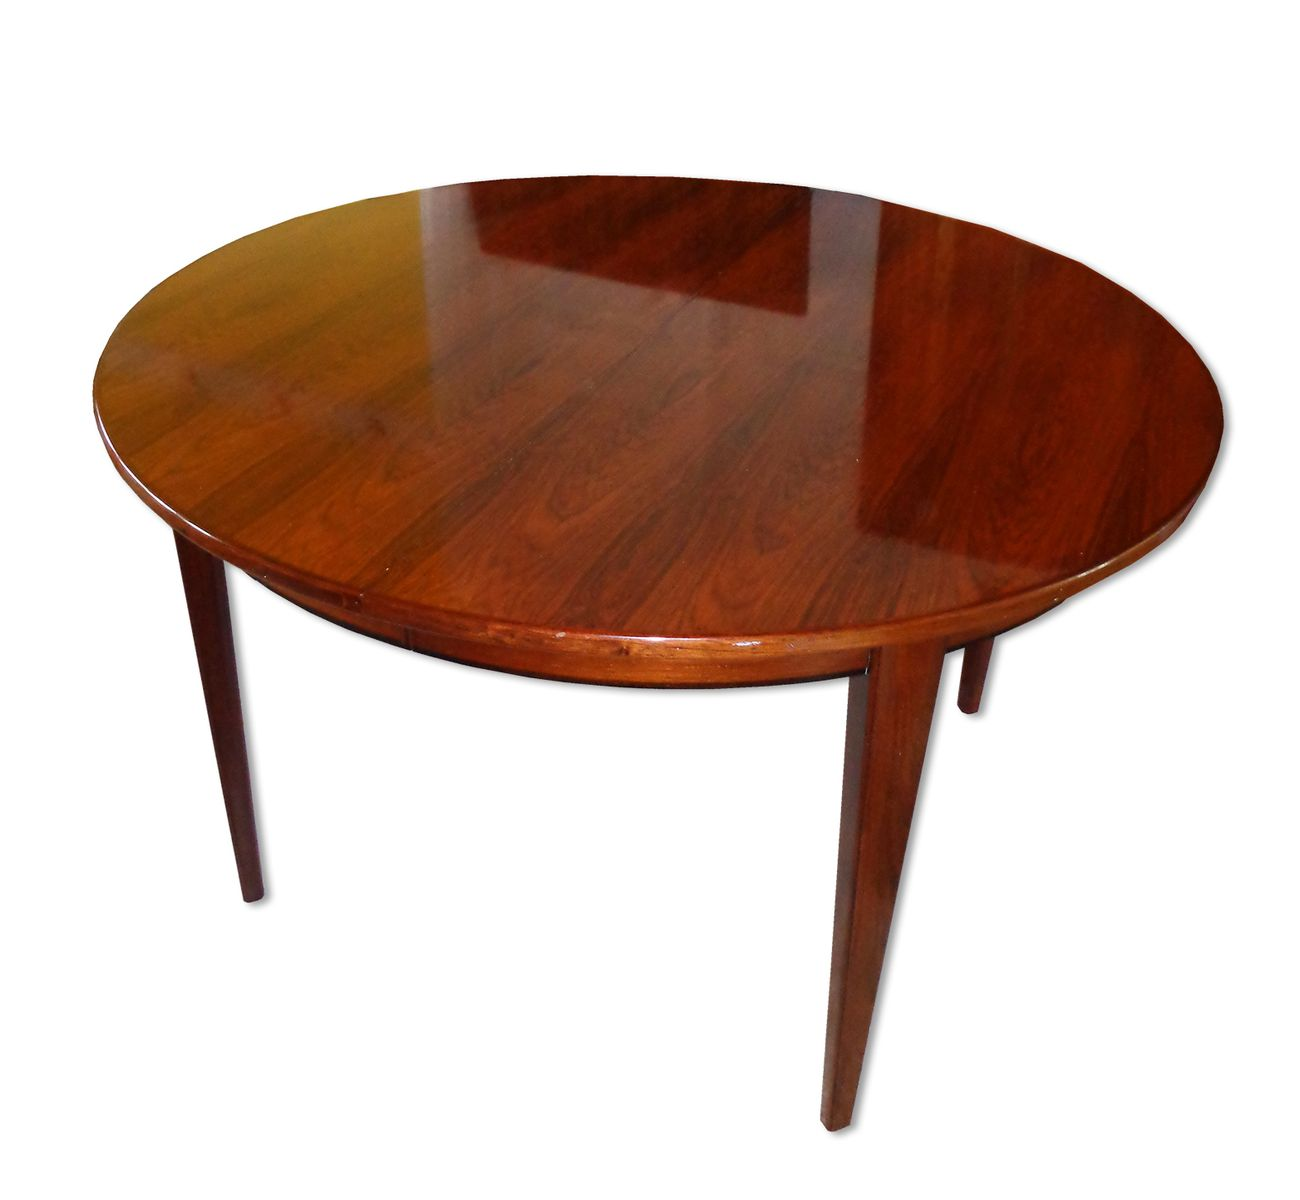 Round Rosewood 55 Dining Table By Gunni Omann 1960s